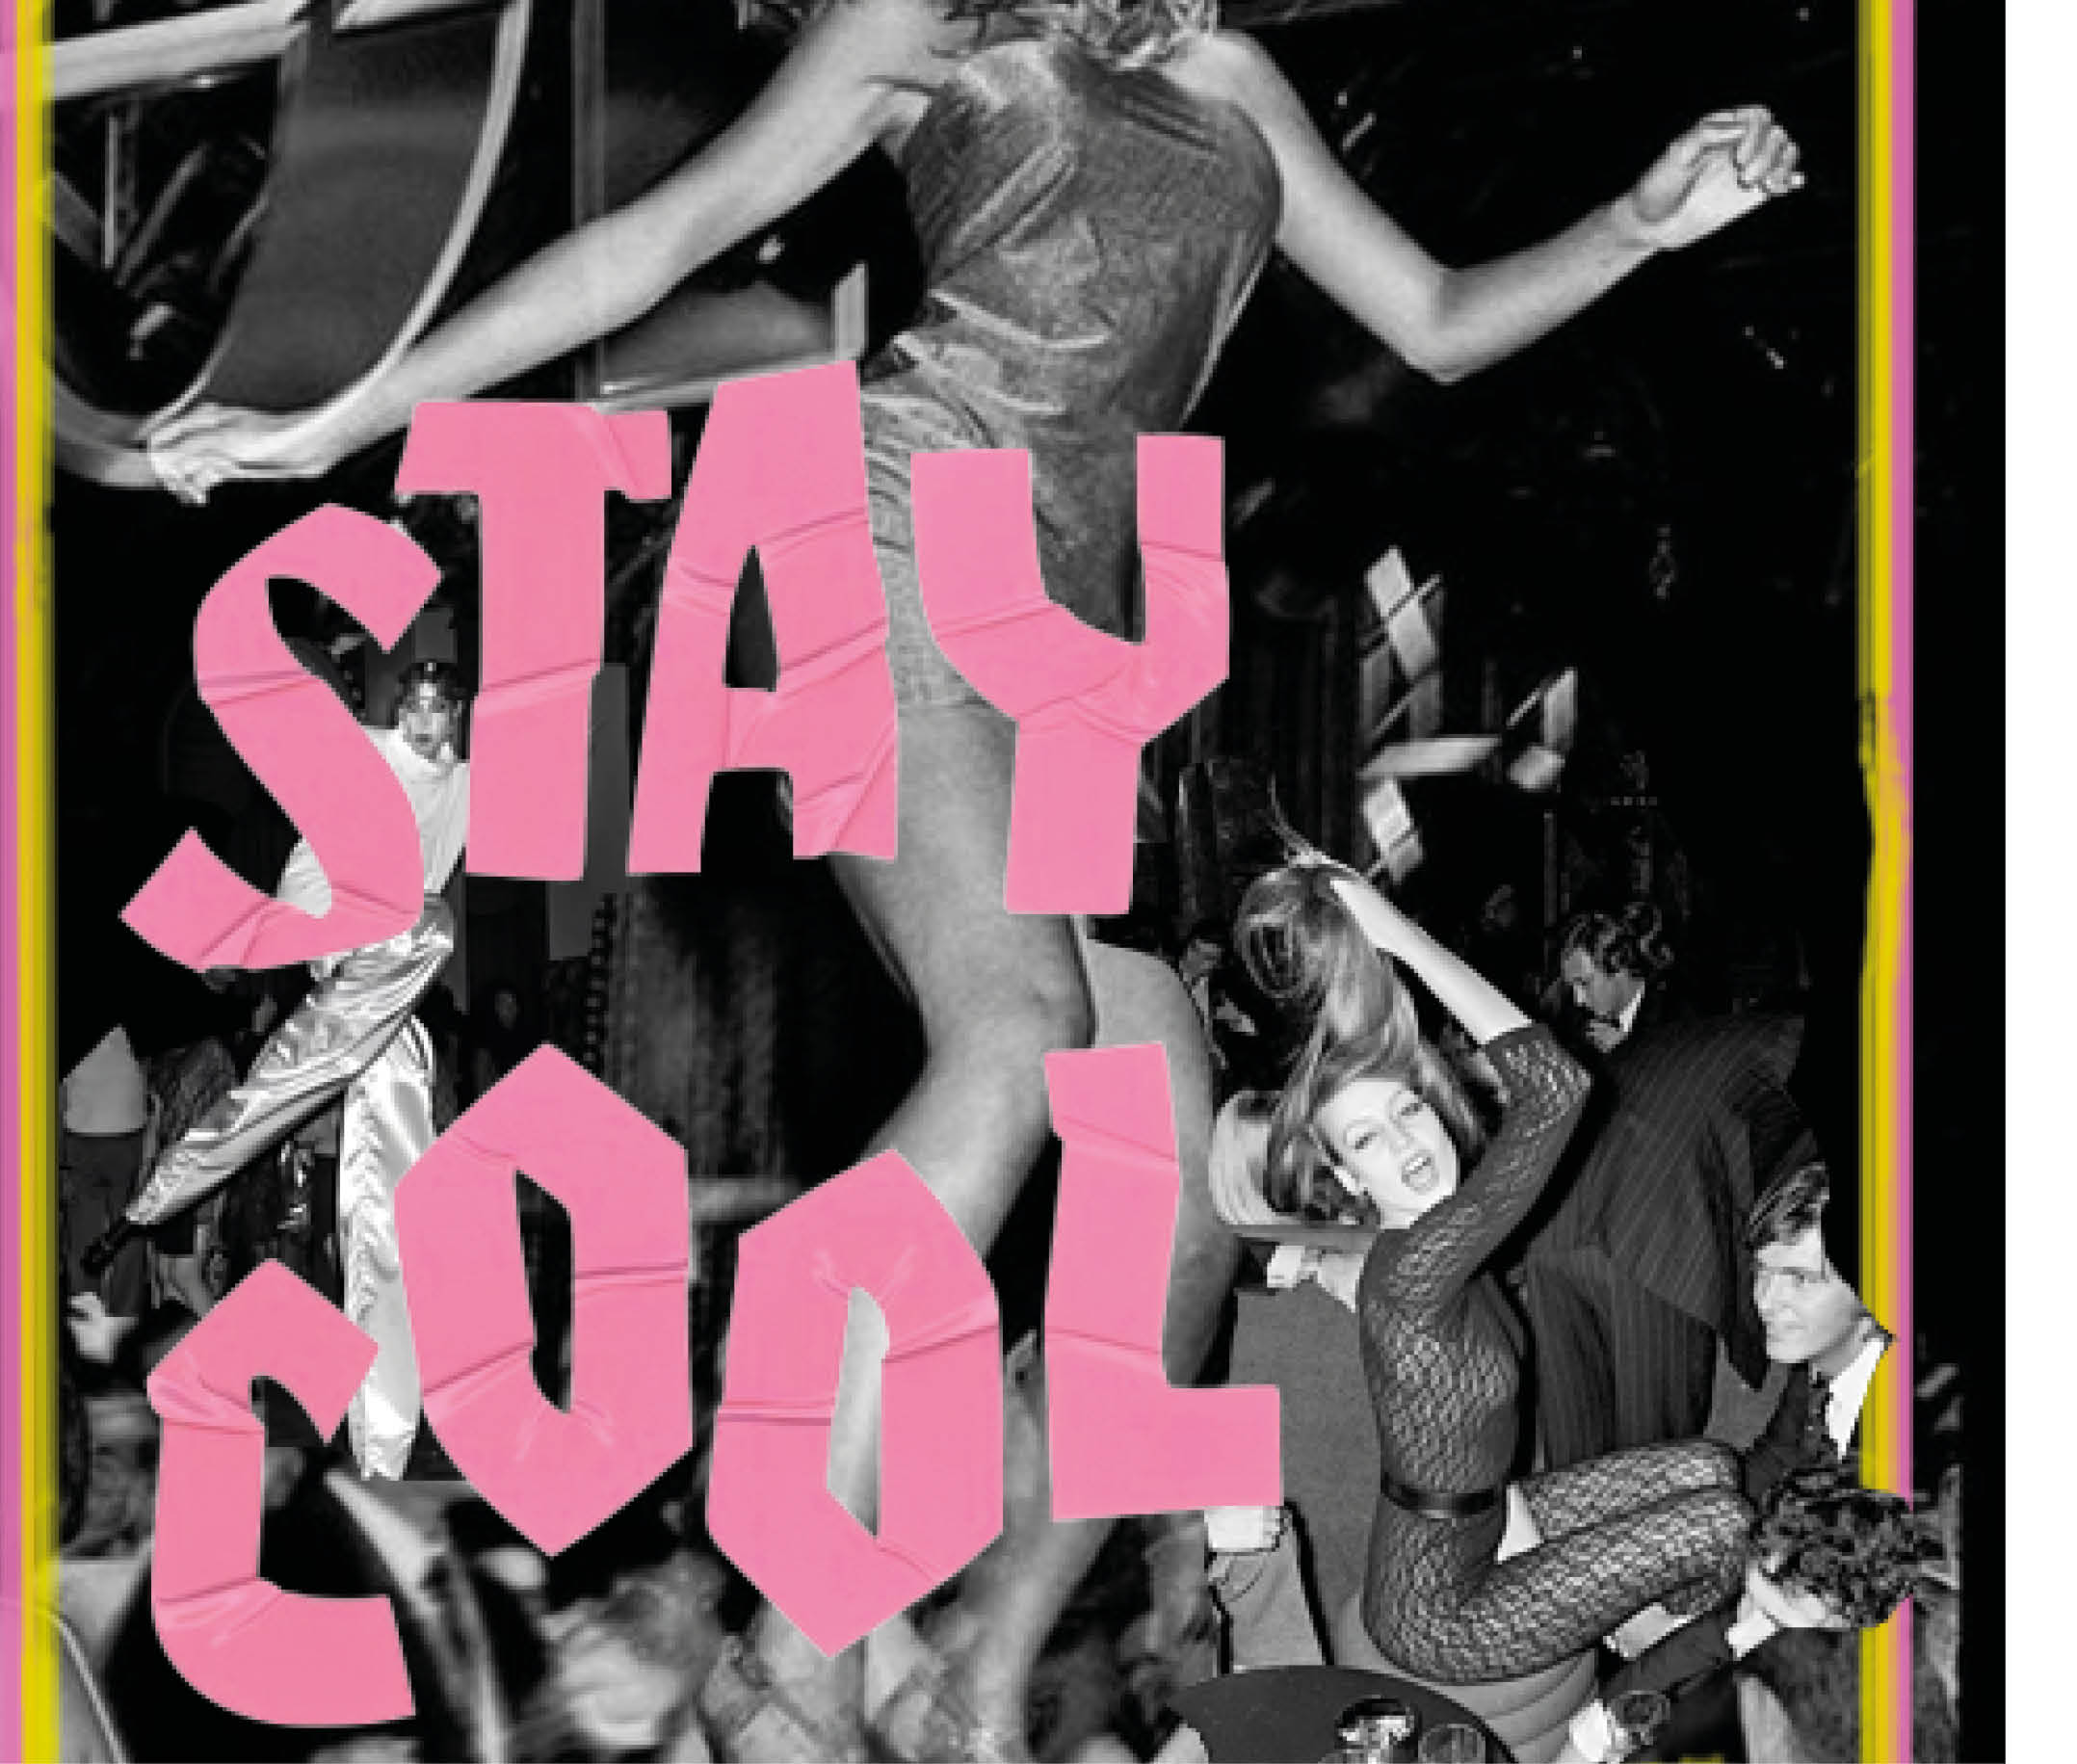 stay cool prev